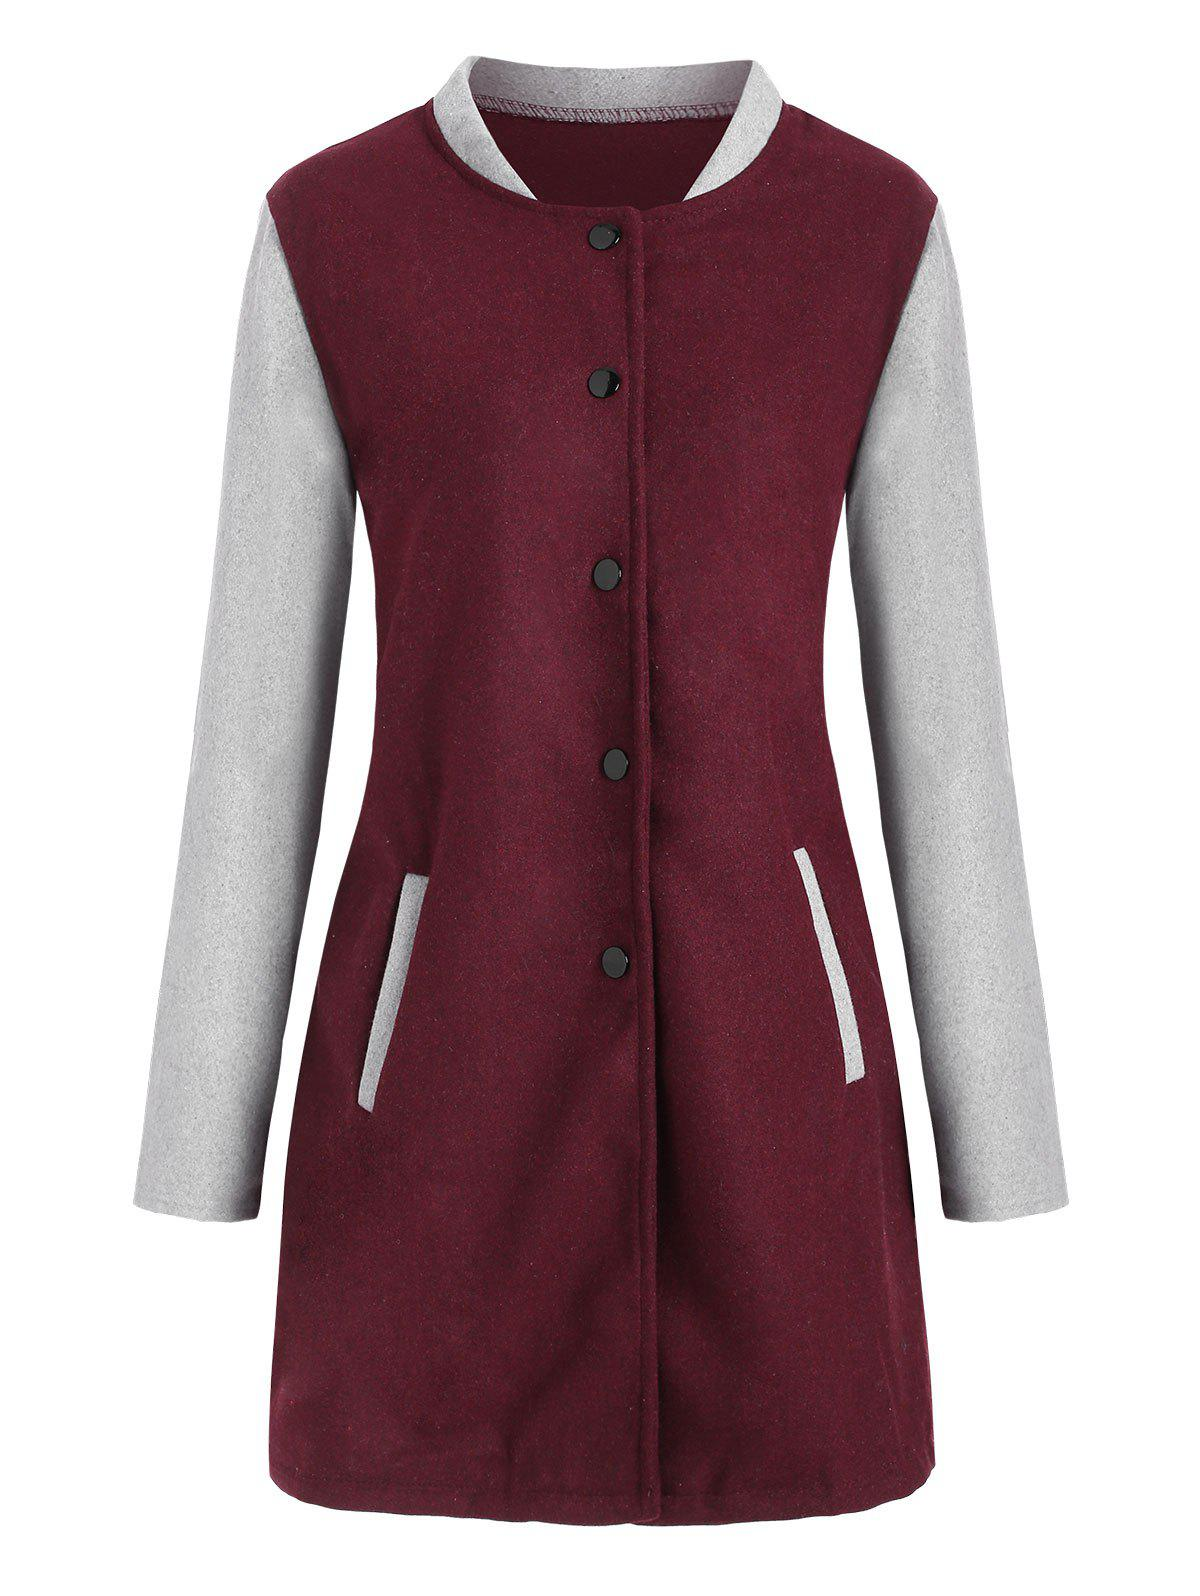 Snap Button Colorblock Coat with Pockets - RED WINE XL